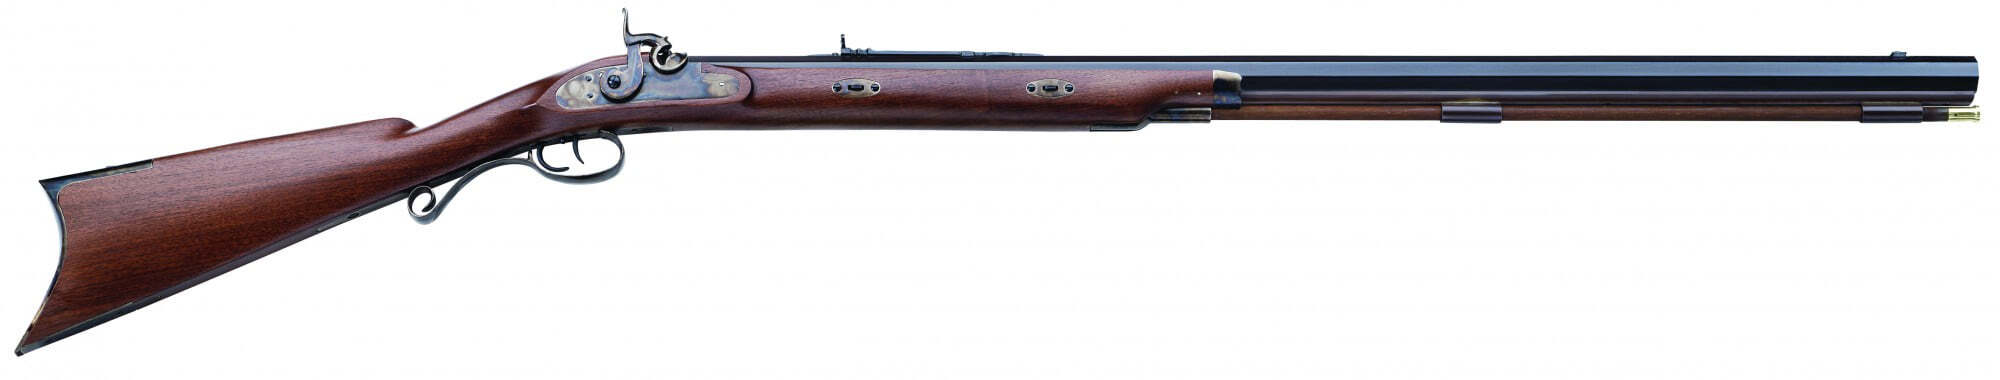 DPS283540 Rocky Mountain Hawken Carbine Mapple Cal. .54 - DPS283540